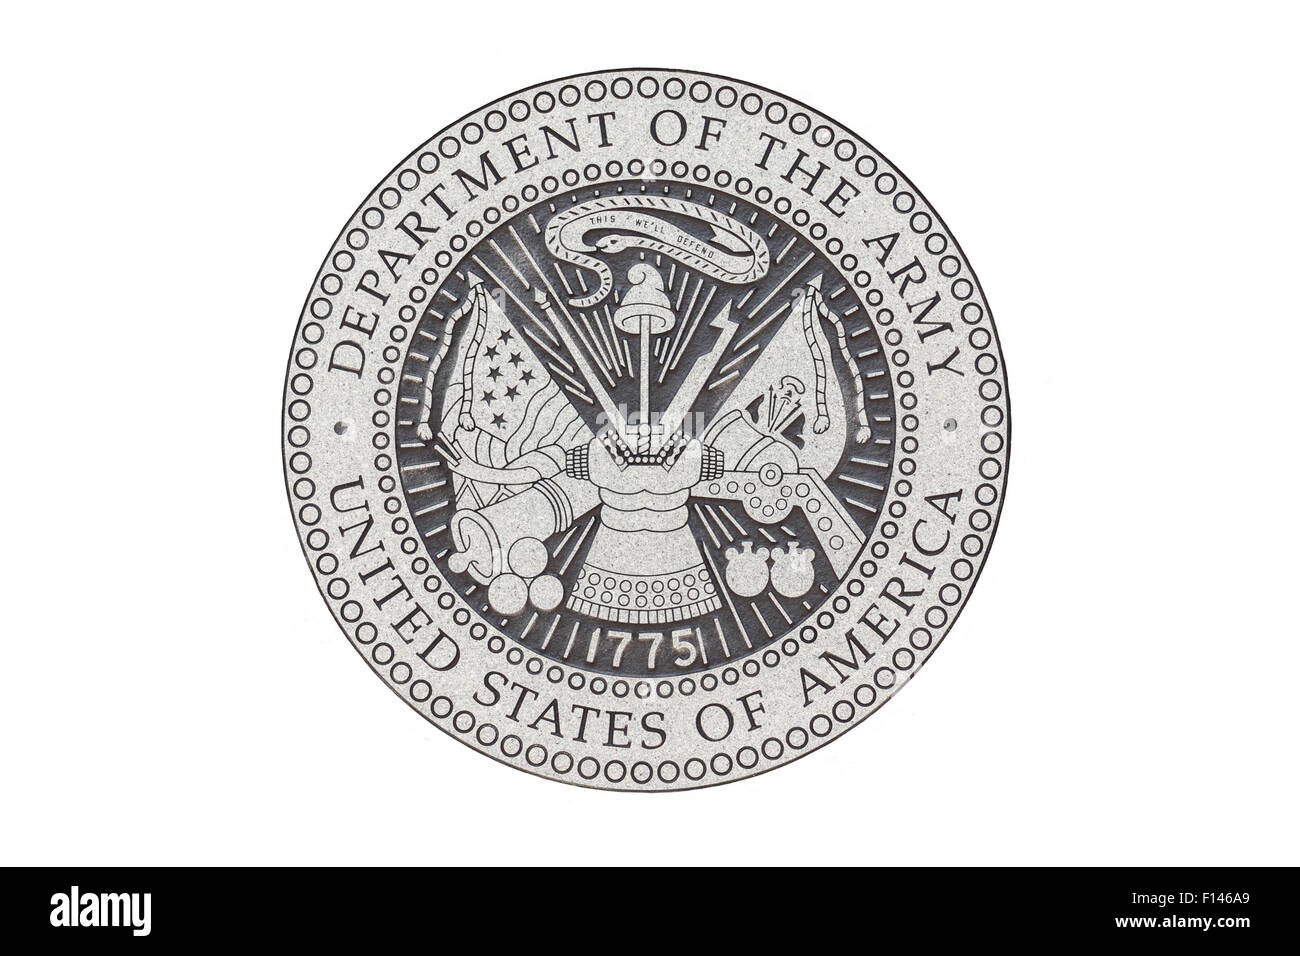 U.S. Army official seal on a white background. - Stock Image